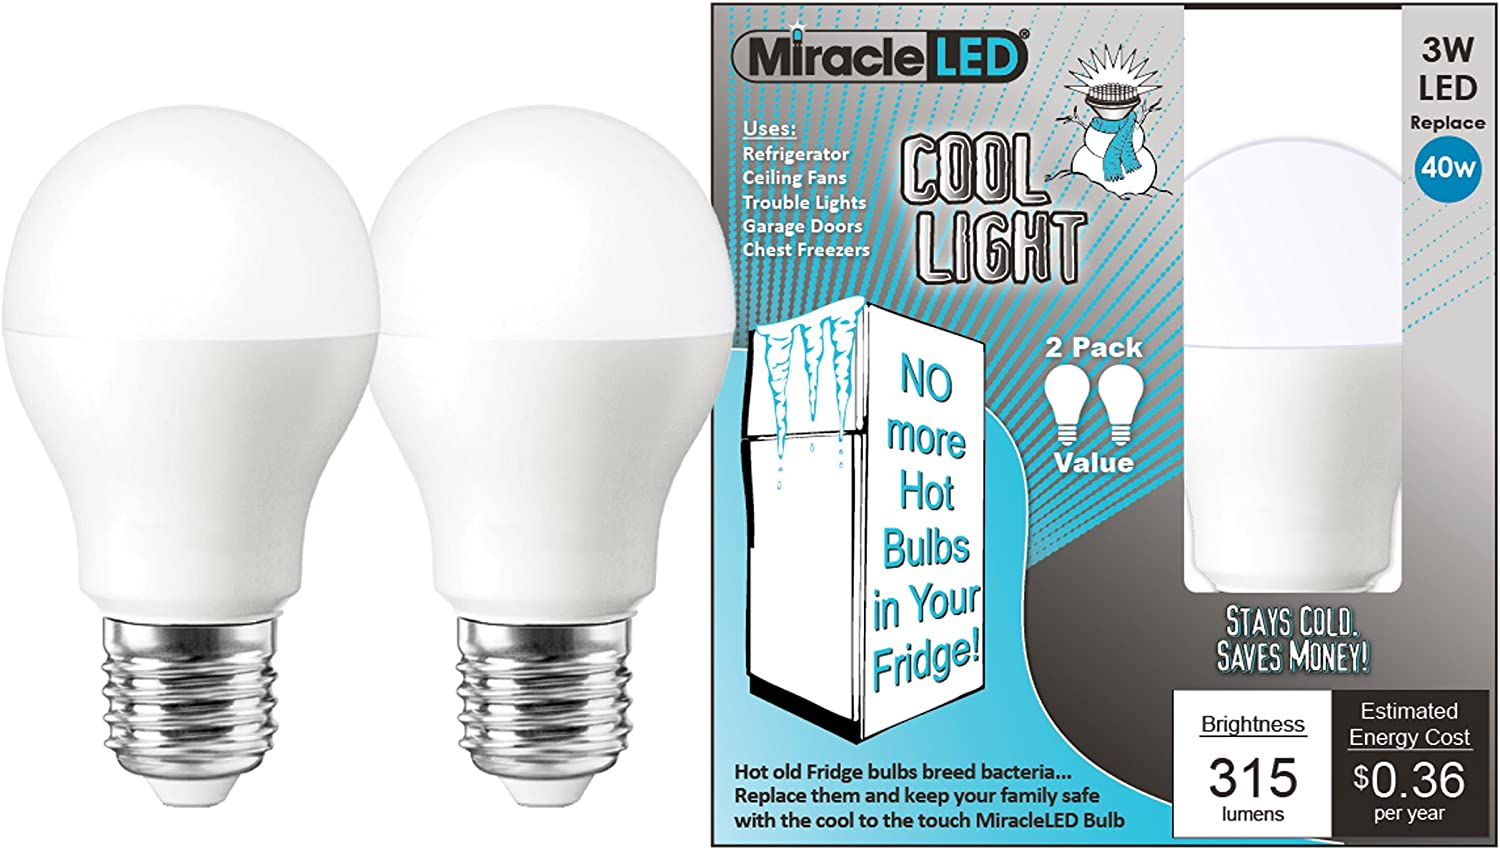 MiracleLED Excellent 604062 3W Refrigerator Sales of SALE items from new works 24 Freezer Low-Energy Light